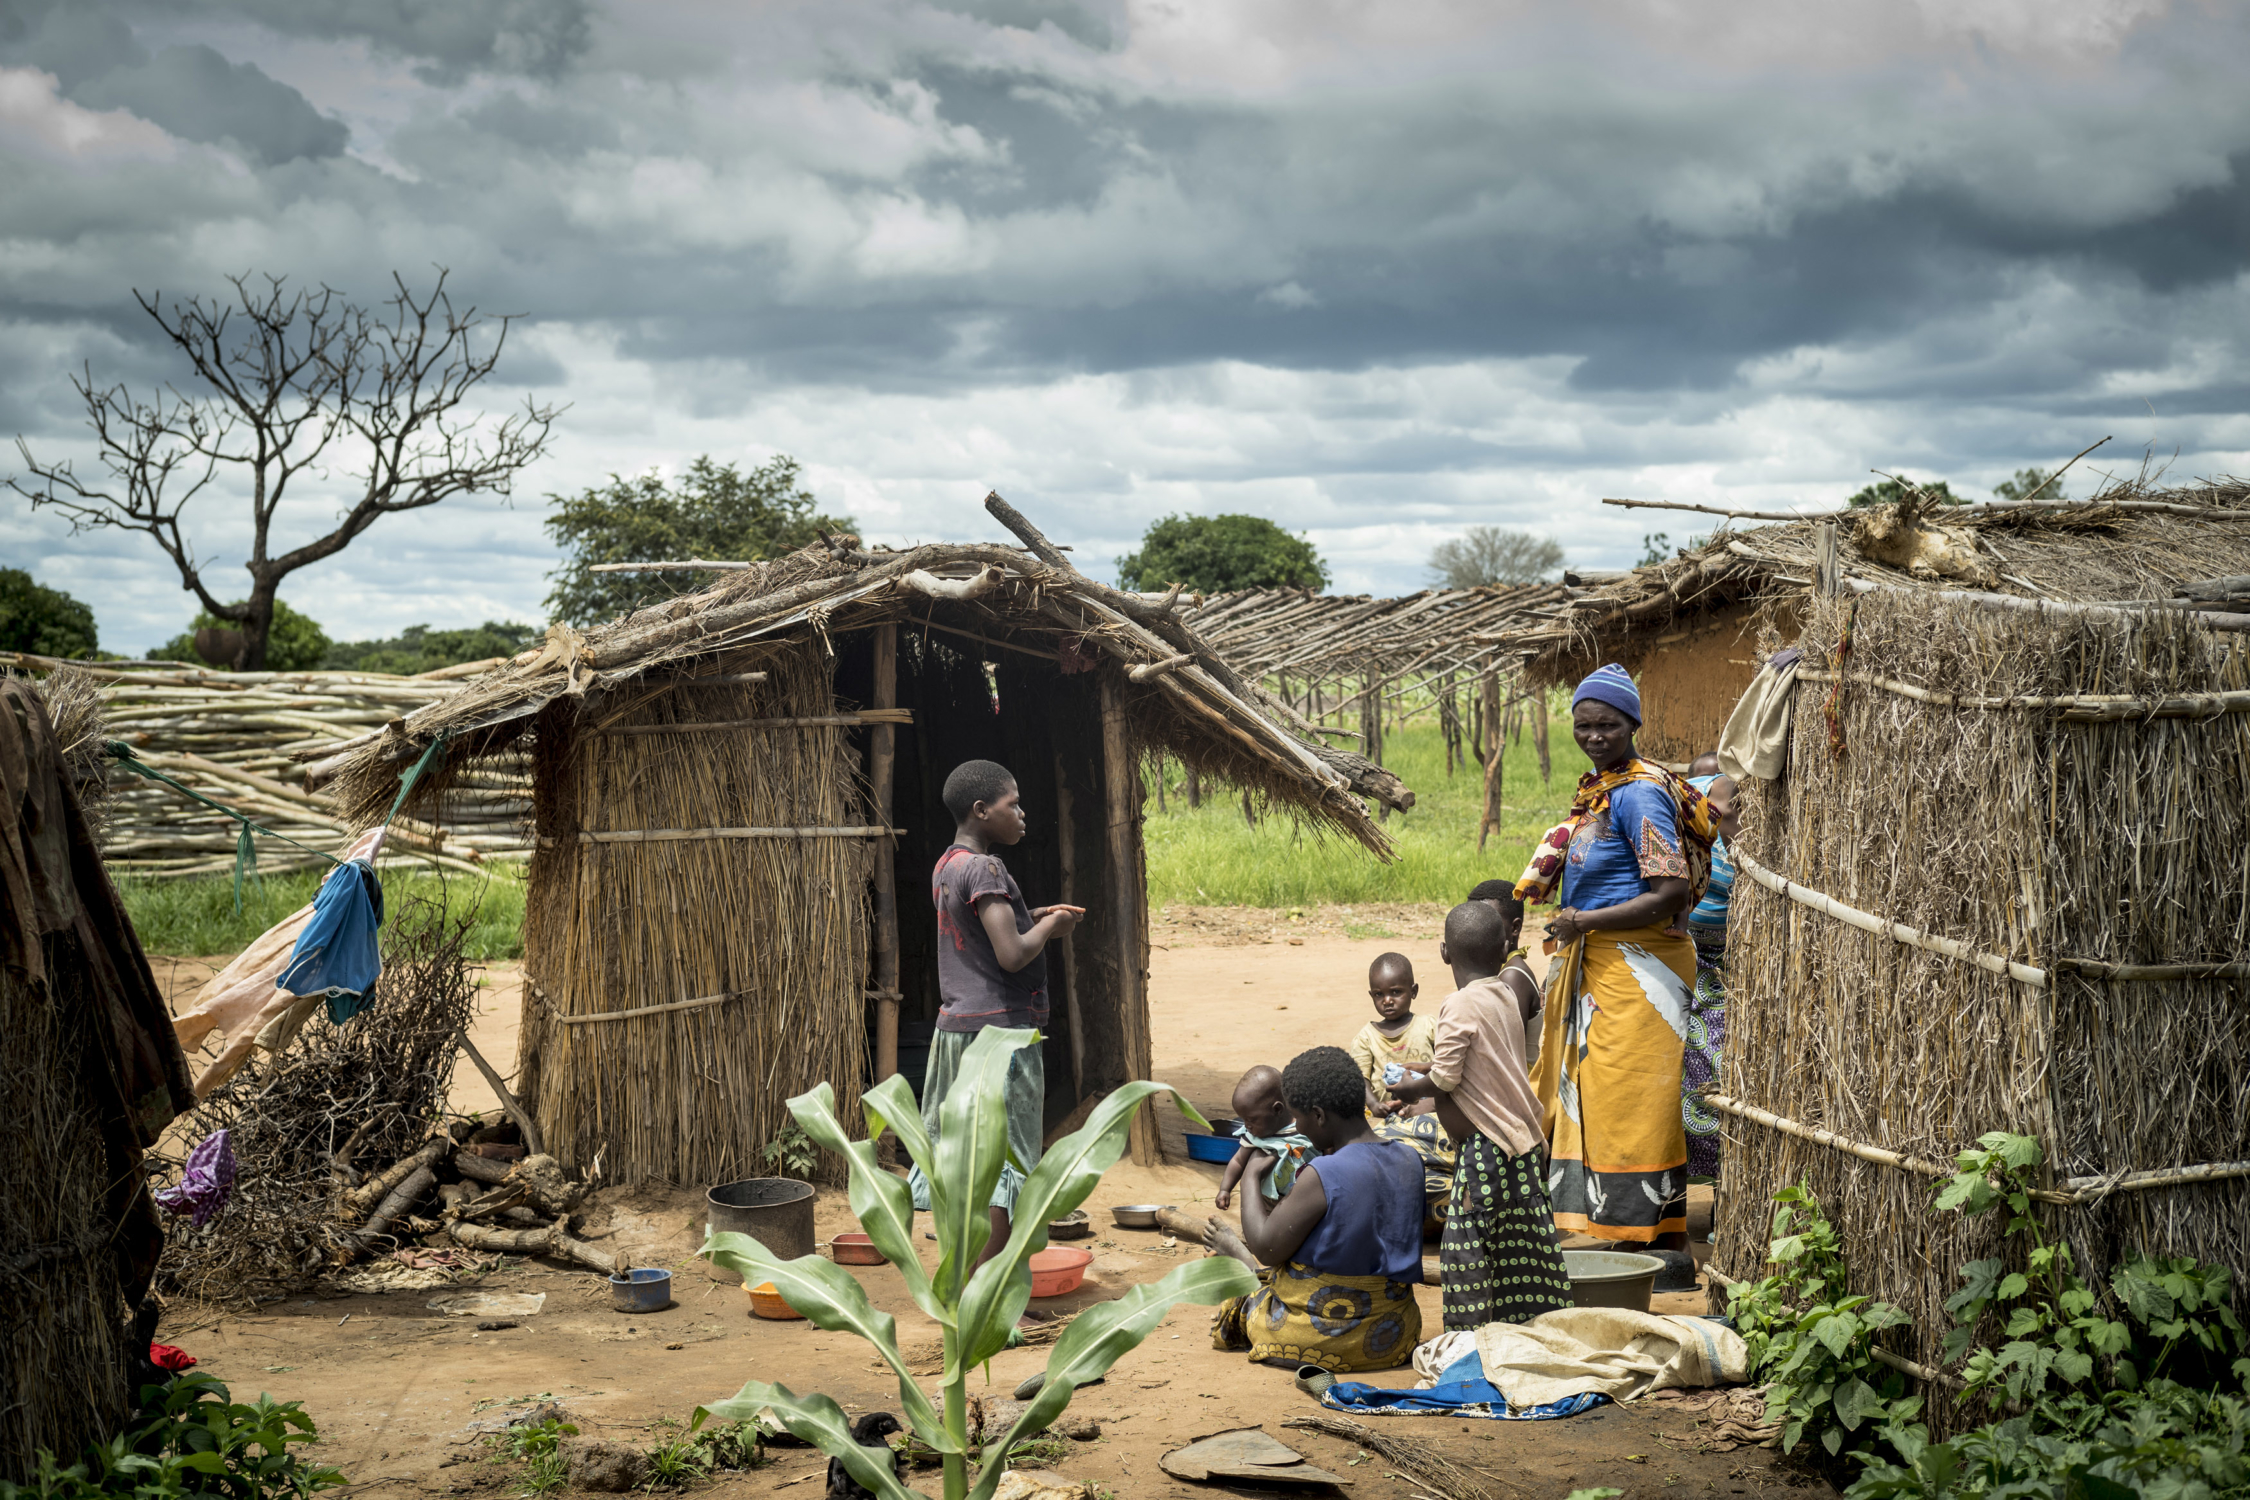 Residents of the tobacco farm village in the Kasungu district of Malawi. Photograph by David Levene.